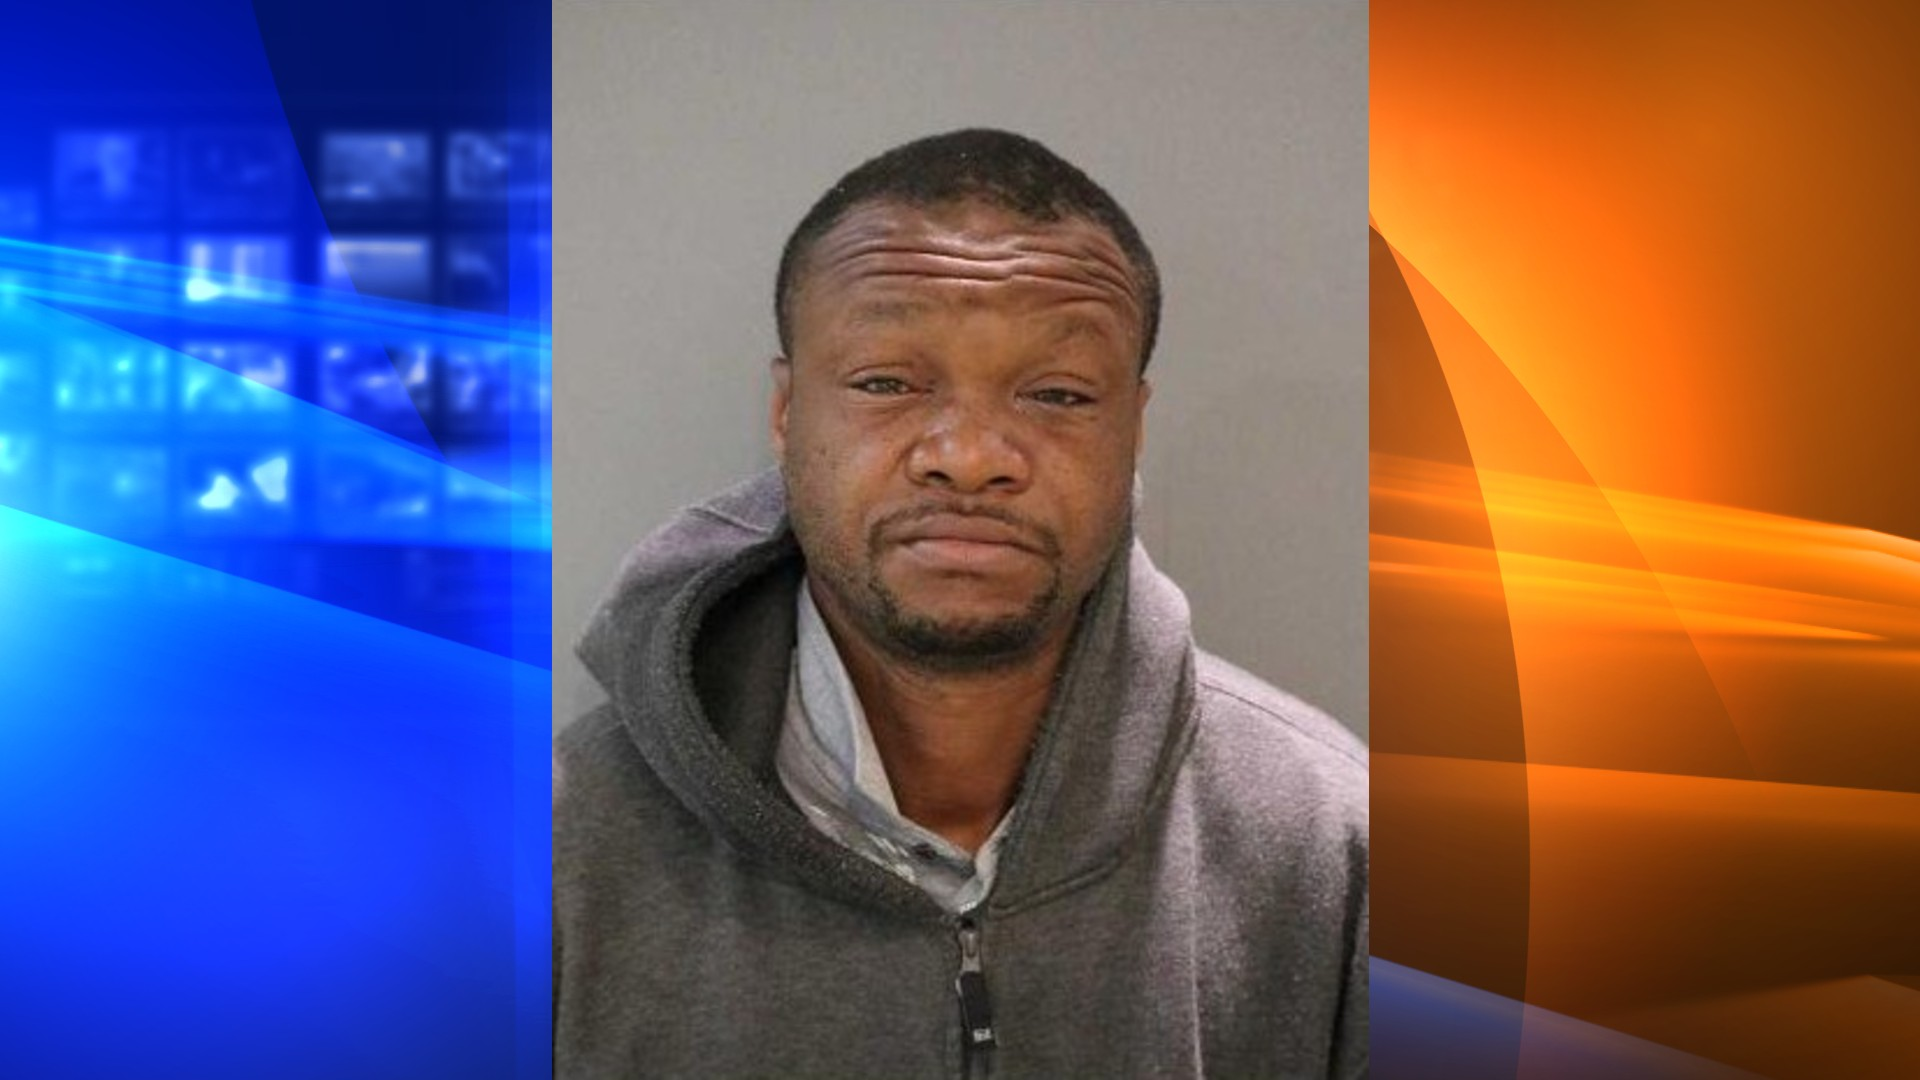 42-year-old Jauhar Tajuddin Shuaib was arrested on suspicion of assault and hate crime in the city of Tustin.